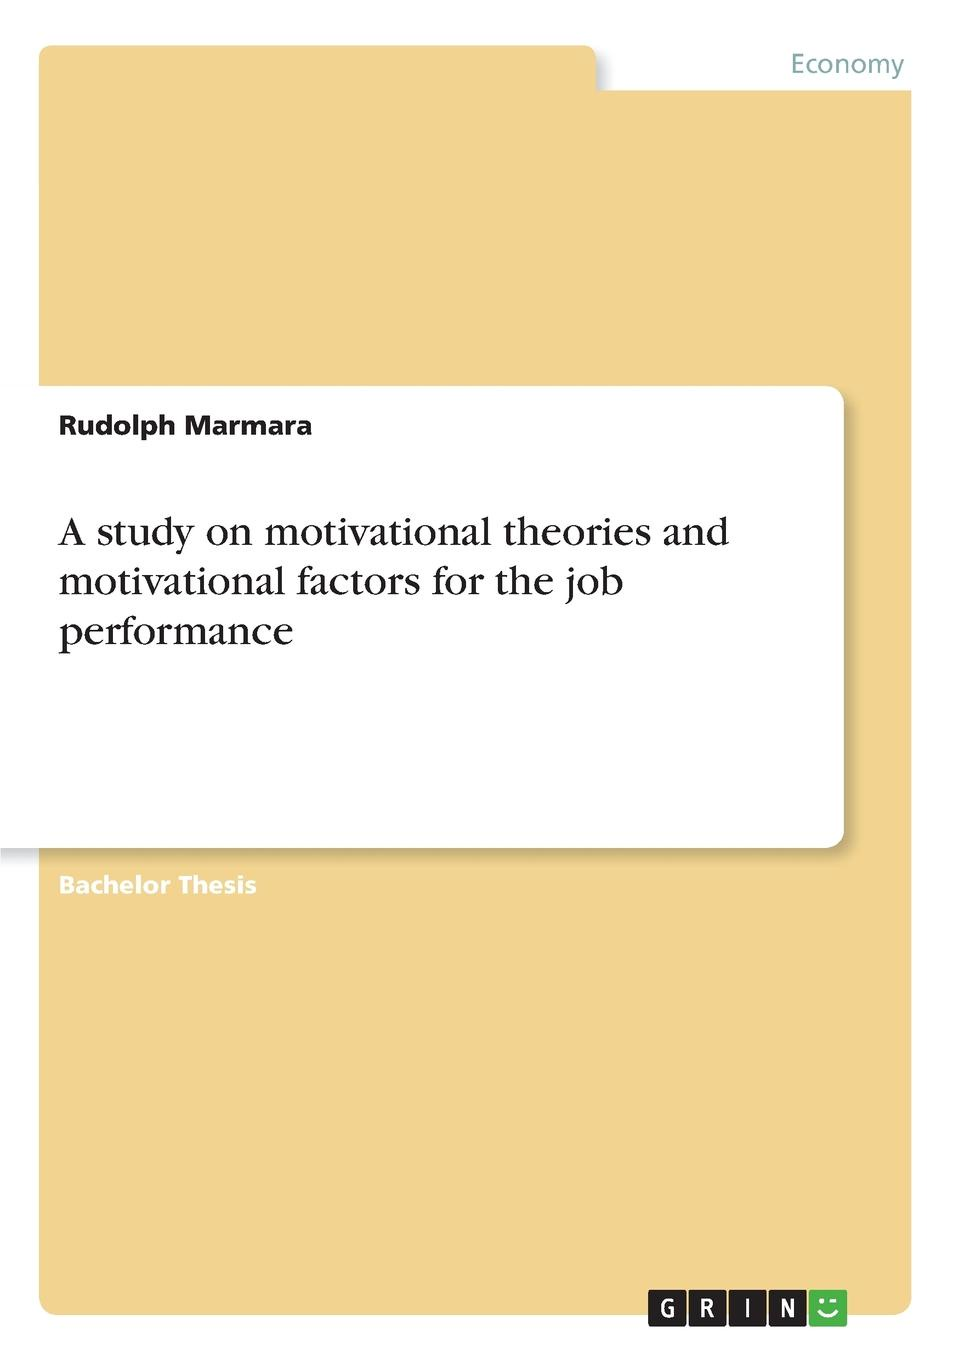 Rudolph Marmara A study on motivational theories and motivational factors for the job performance muhammad naeem intrinsic versus extrinsic motivation and the effects of those types on employees